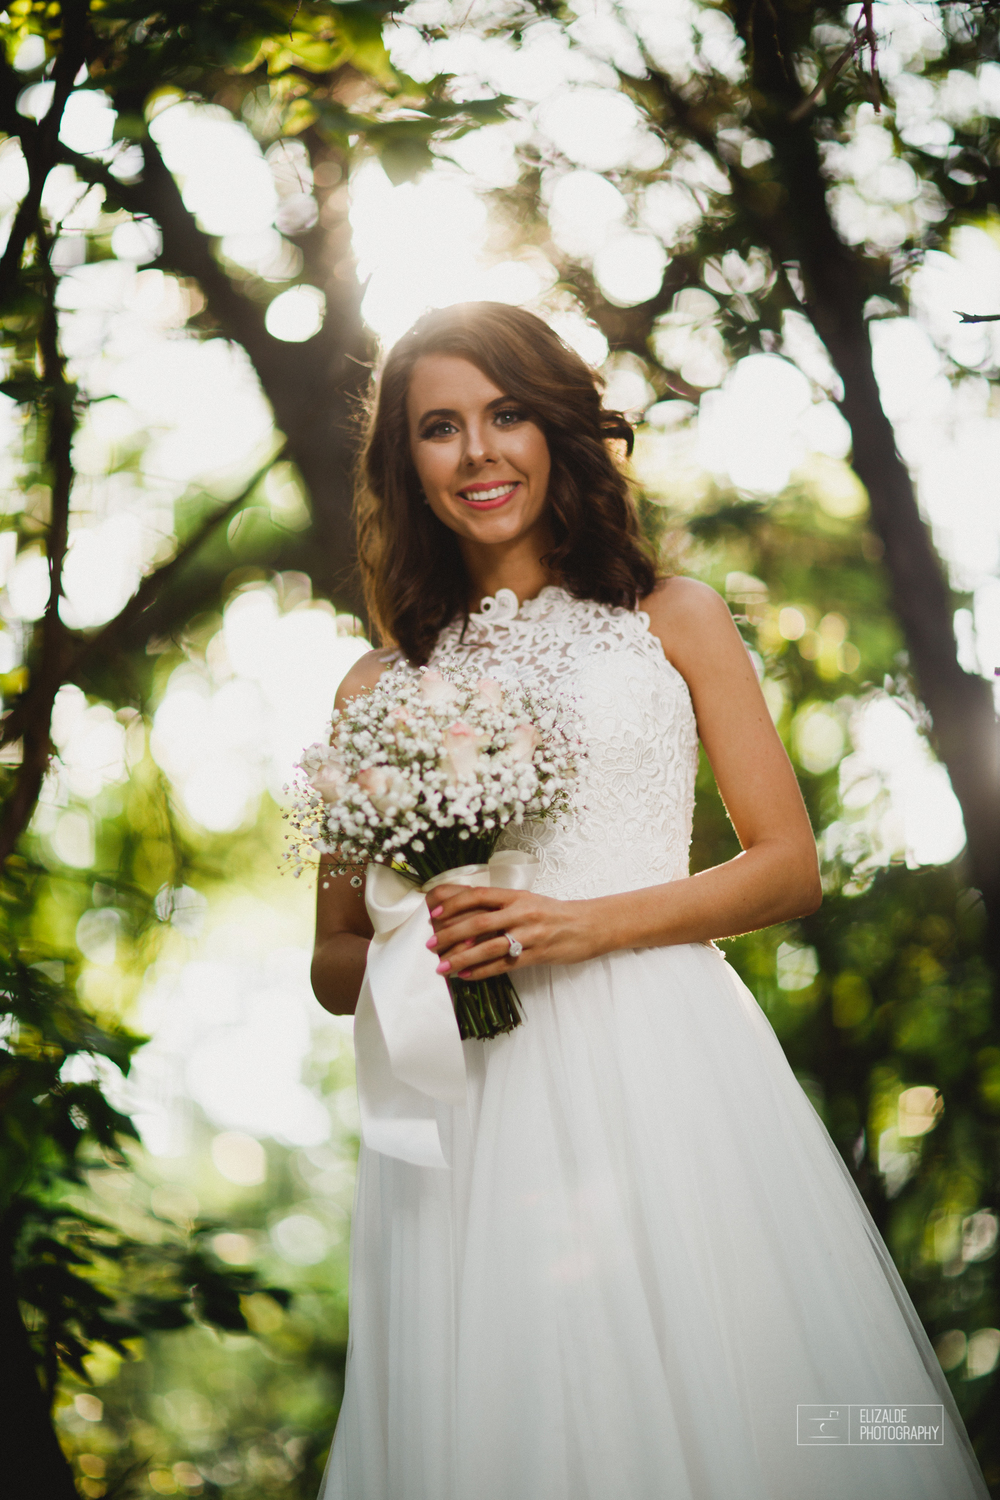 Bridal session_Dallas Photographer_Elizalde Photography_Denton photographer_ DFW Photographer_ Wedding Photographer_Baleigh9.jpg